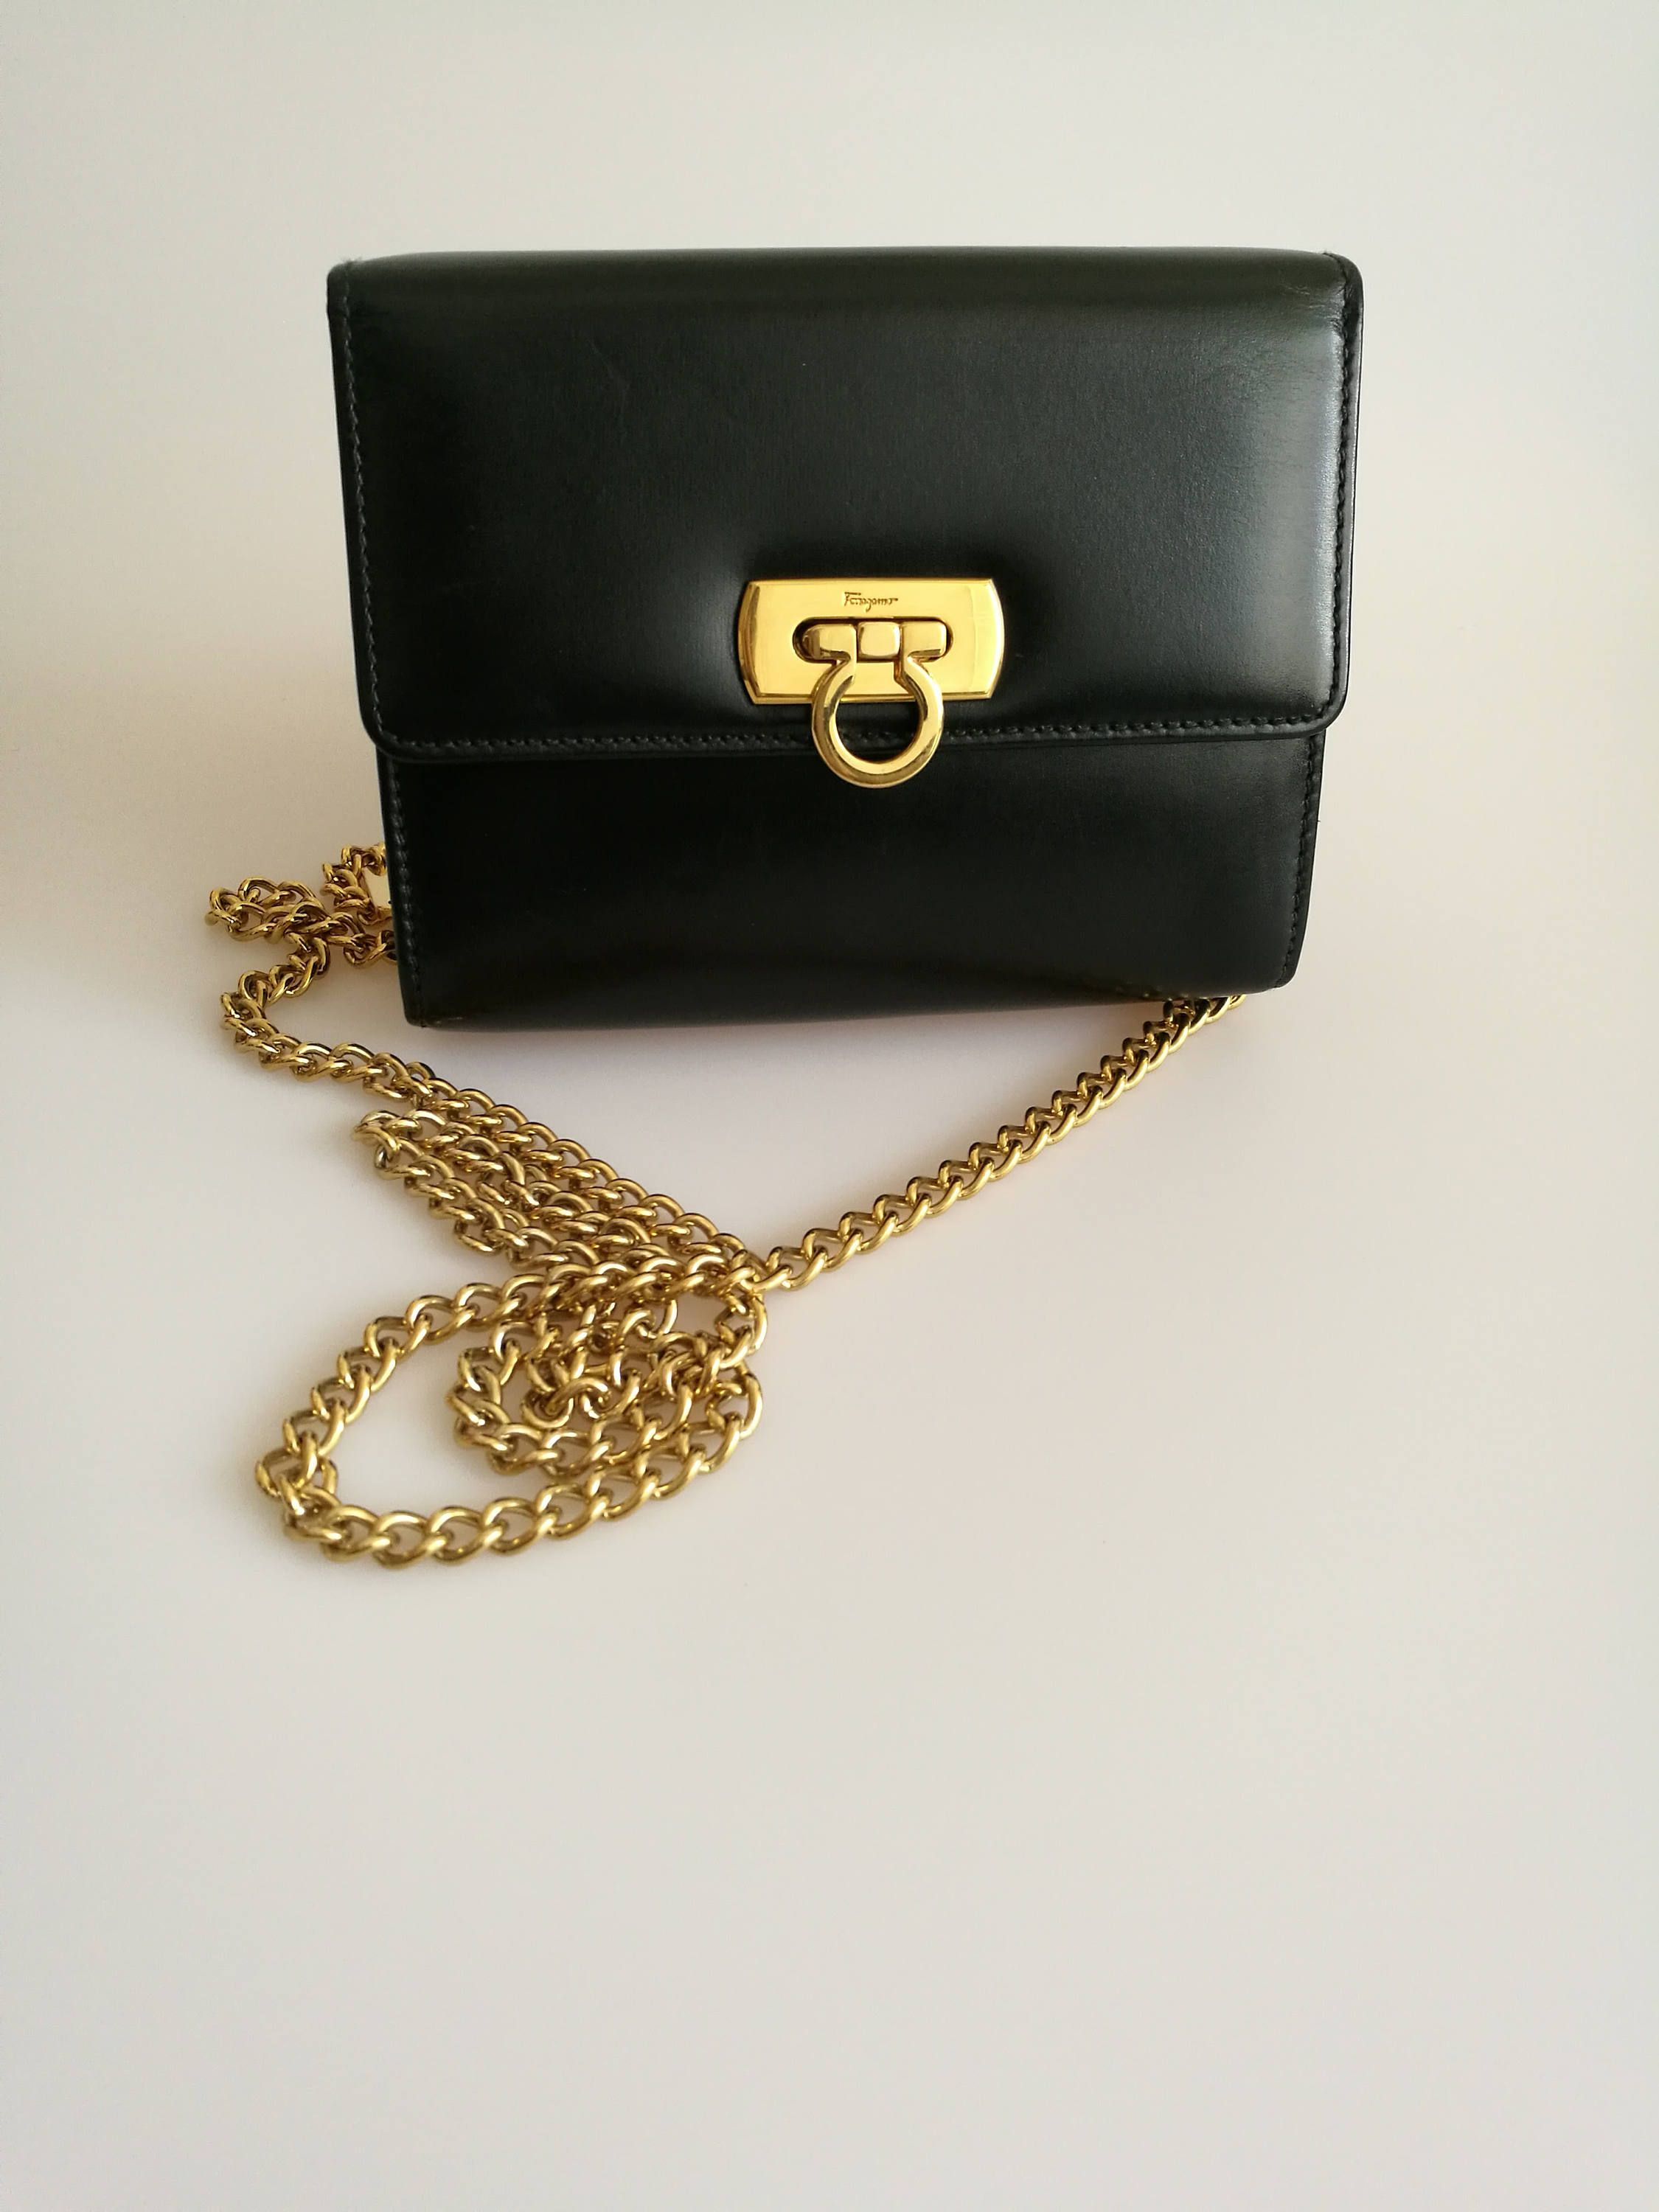 Salvatore Ferragamo Vintage Mini Gancini Black Leather Gold Chain Crossbody Clutch  Bag by DelpheneAvenue on Etsy a639d855cb49e